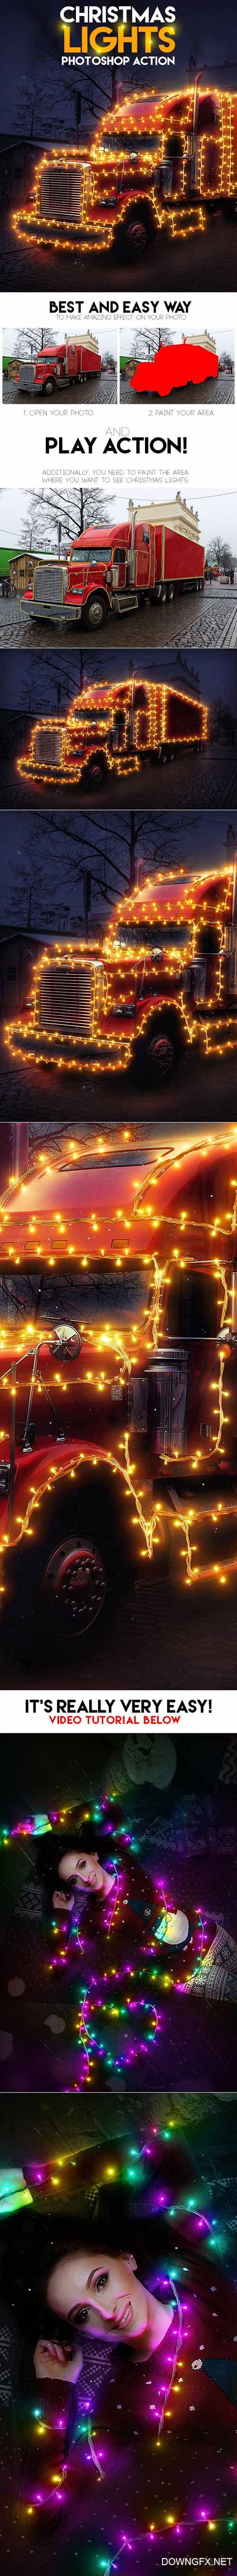 GraphicRiver - Christmas Lights Photoshop Action 19196889